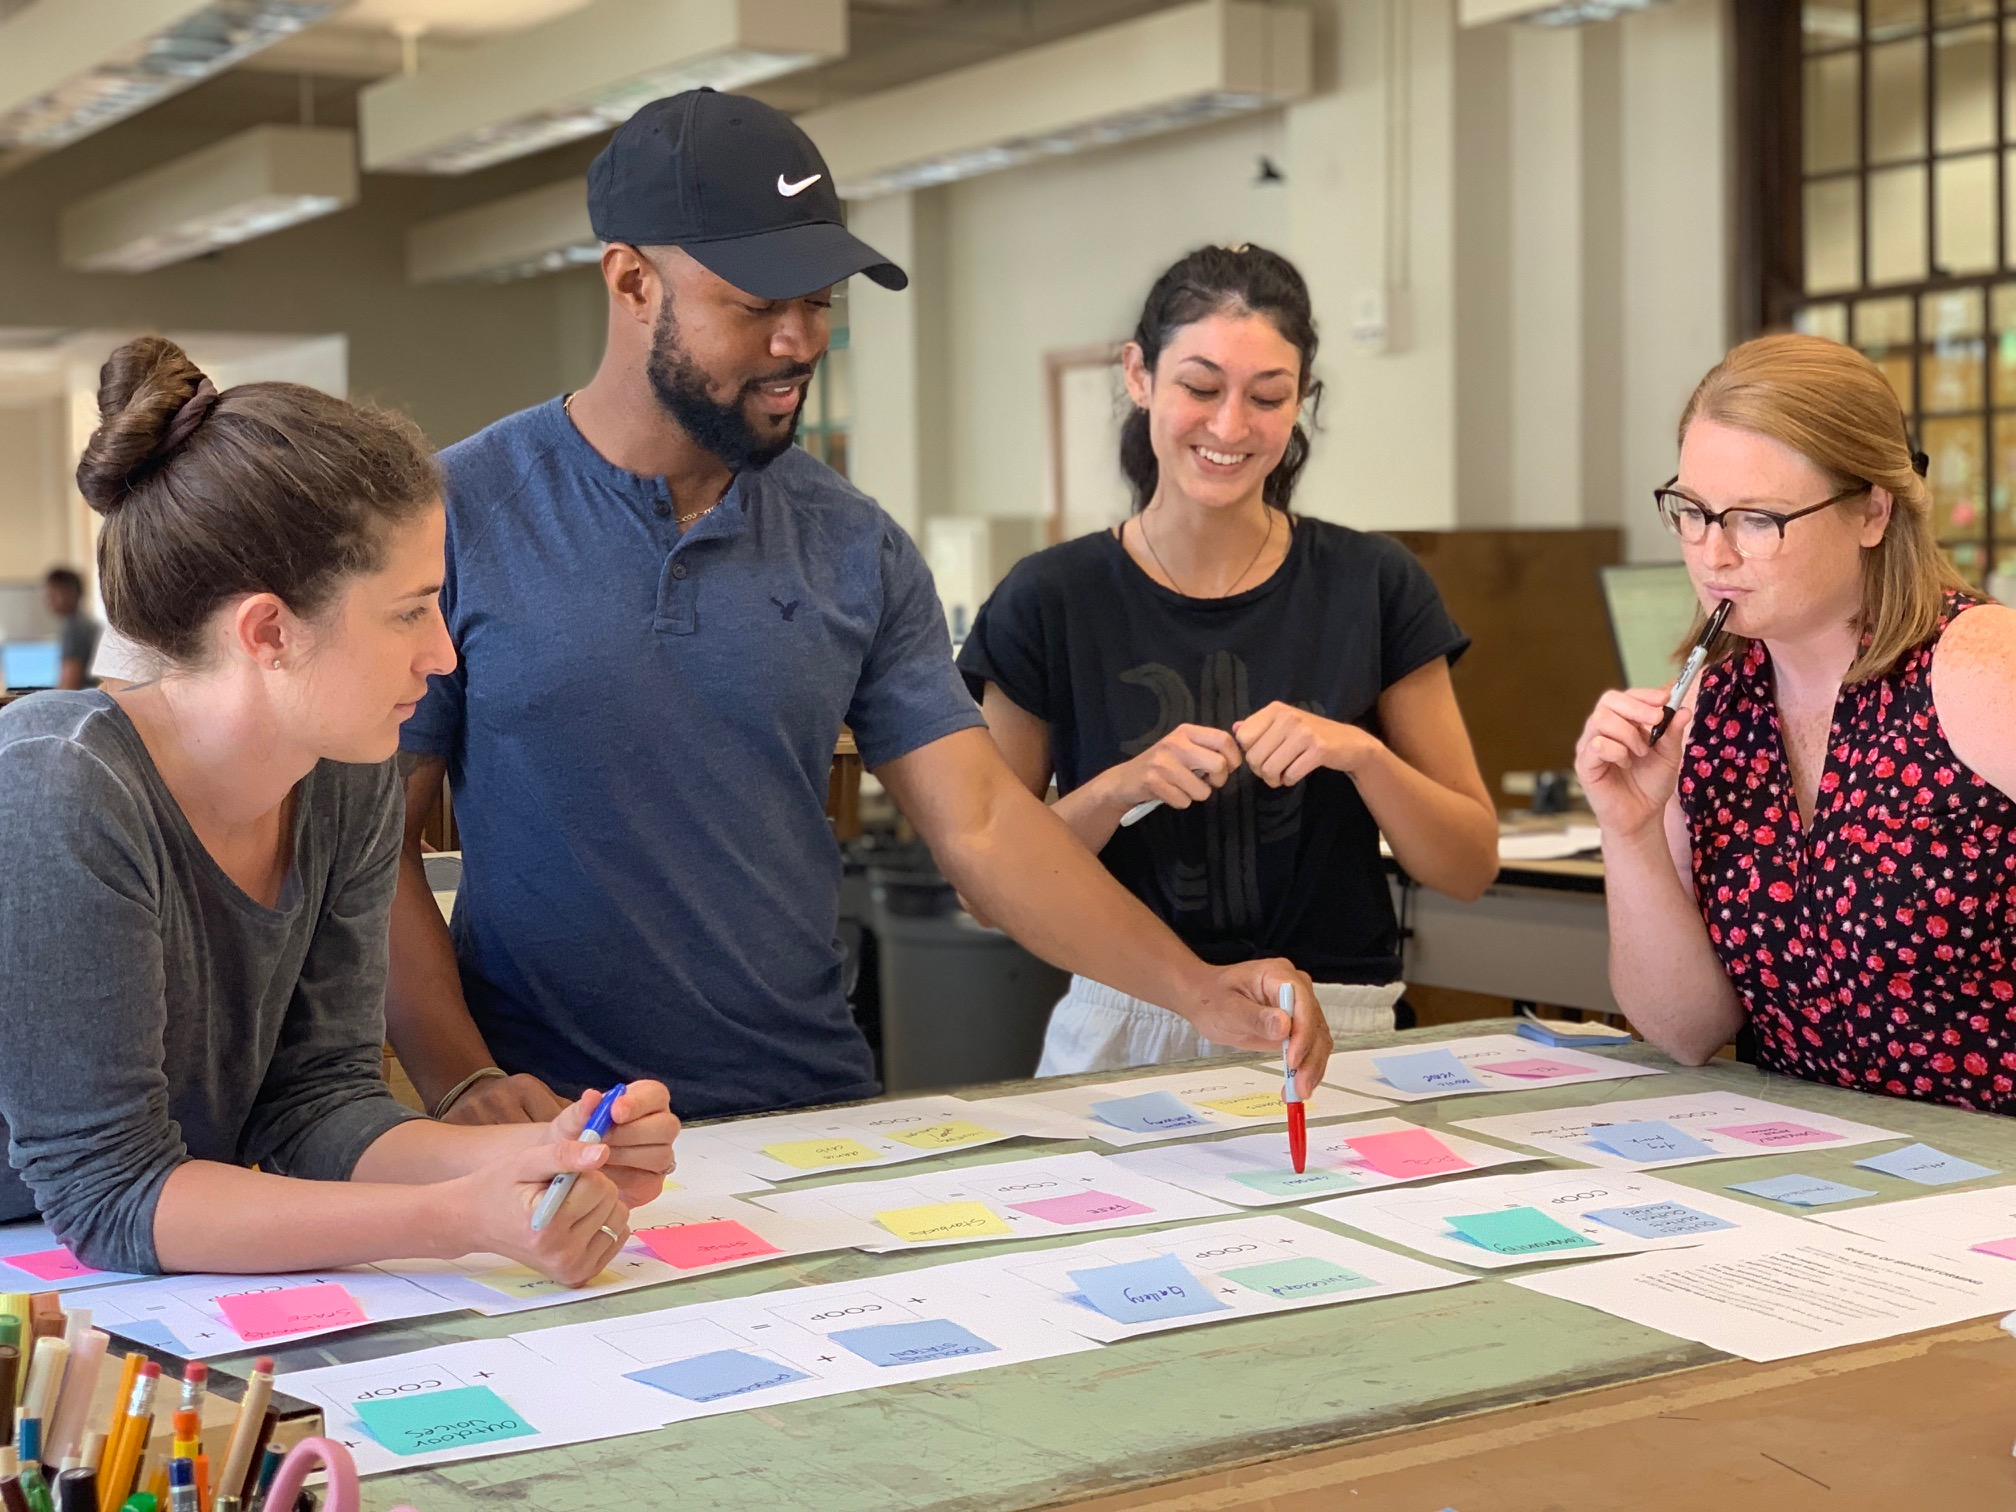 Four students of different genders and races gather around a table to collaborate over post it notes